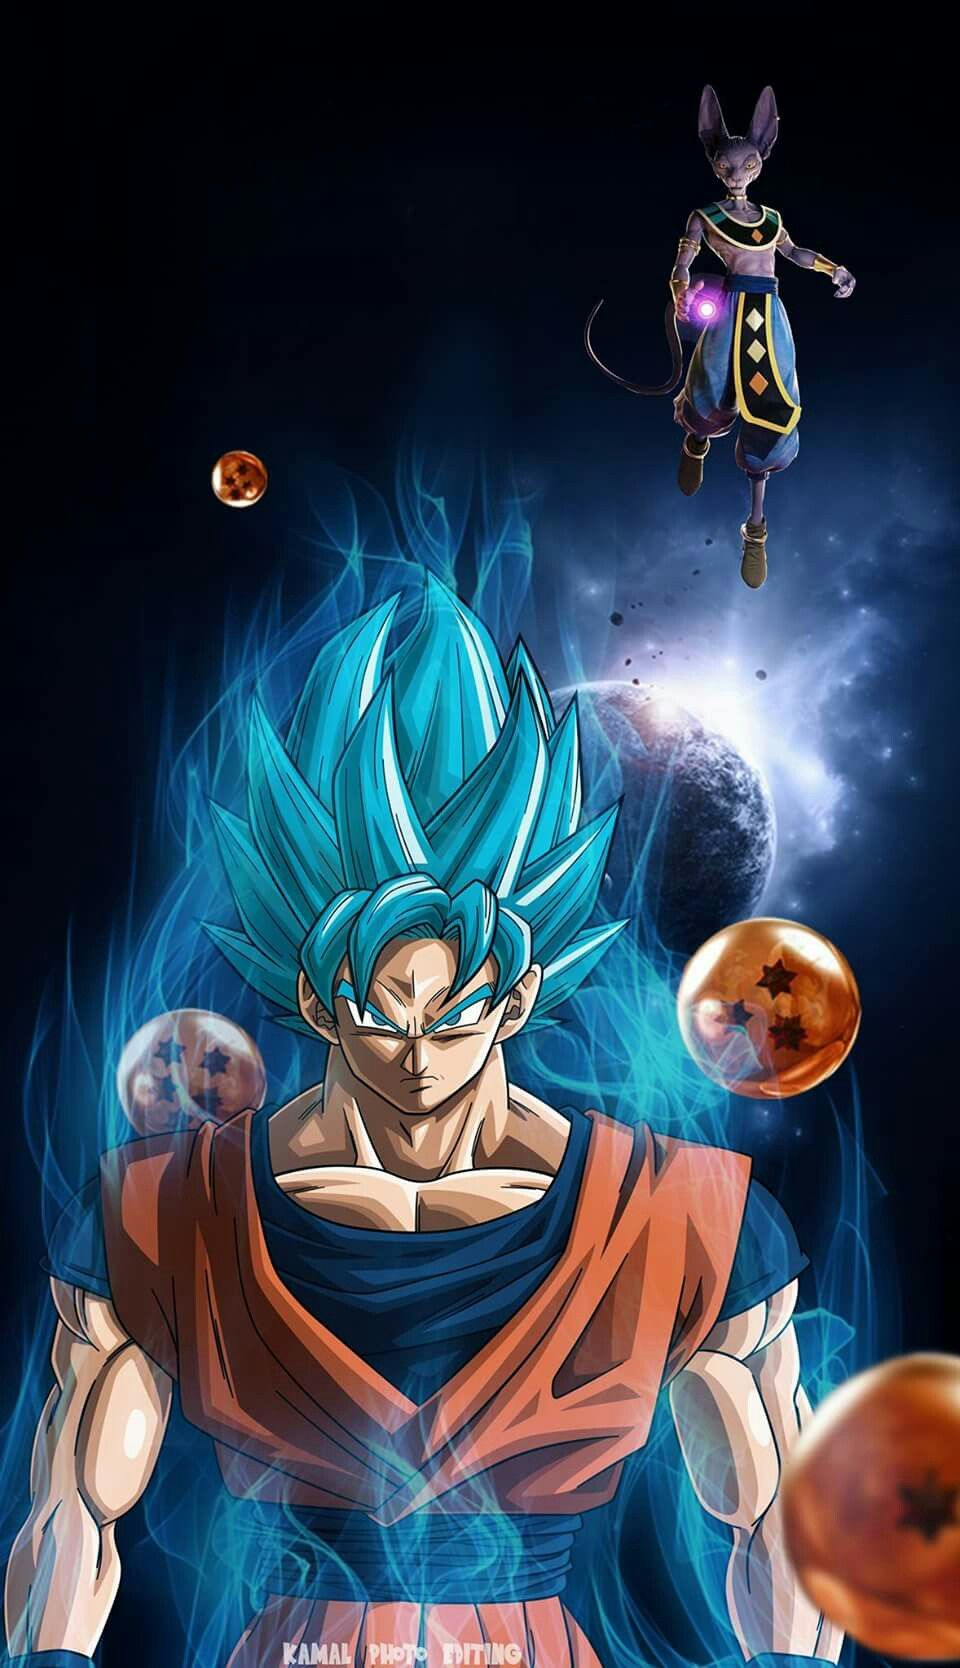 Goku and Beerus Desenhos dragonball, Anime e Dragon ball